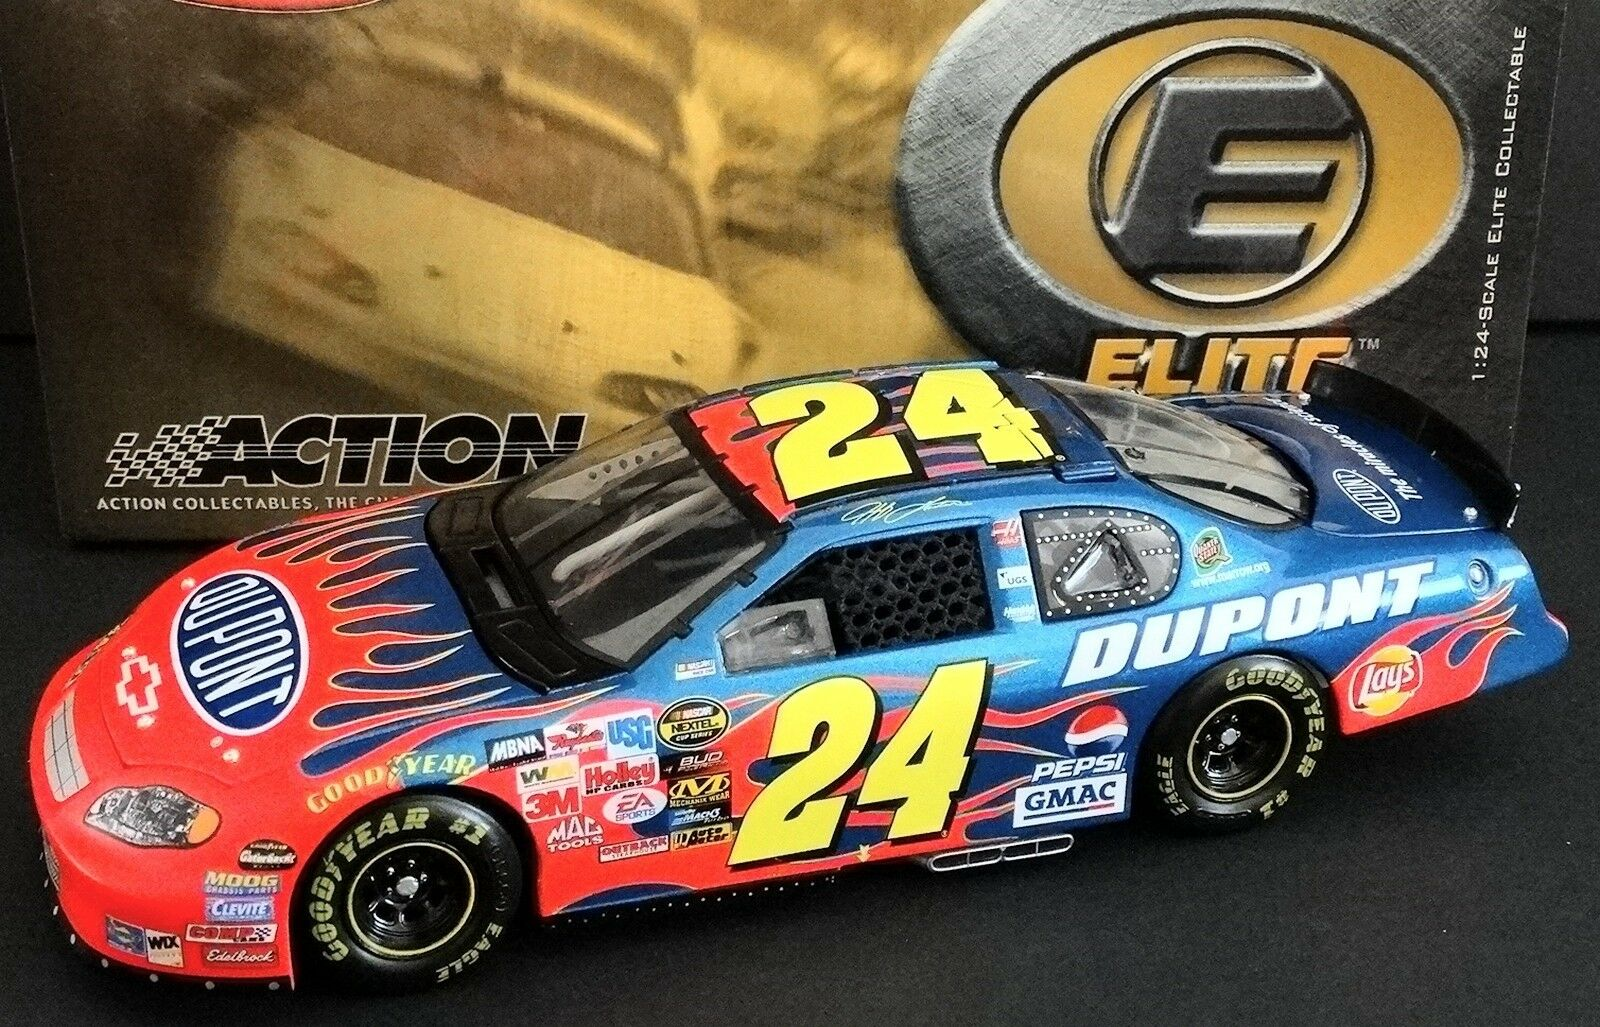 Jeff Gordon  24 Dupont 1 24 Racing Collectables Club of America Elite flammes 2005 Monte Carlo 1324 1500